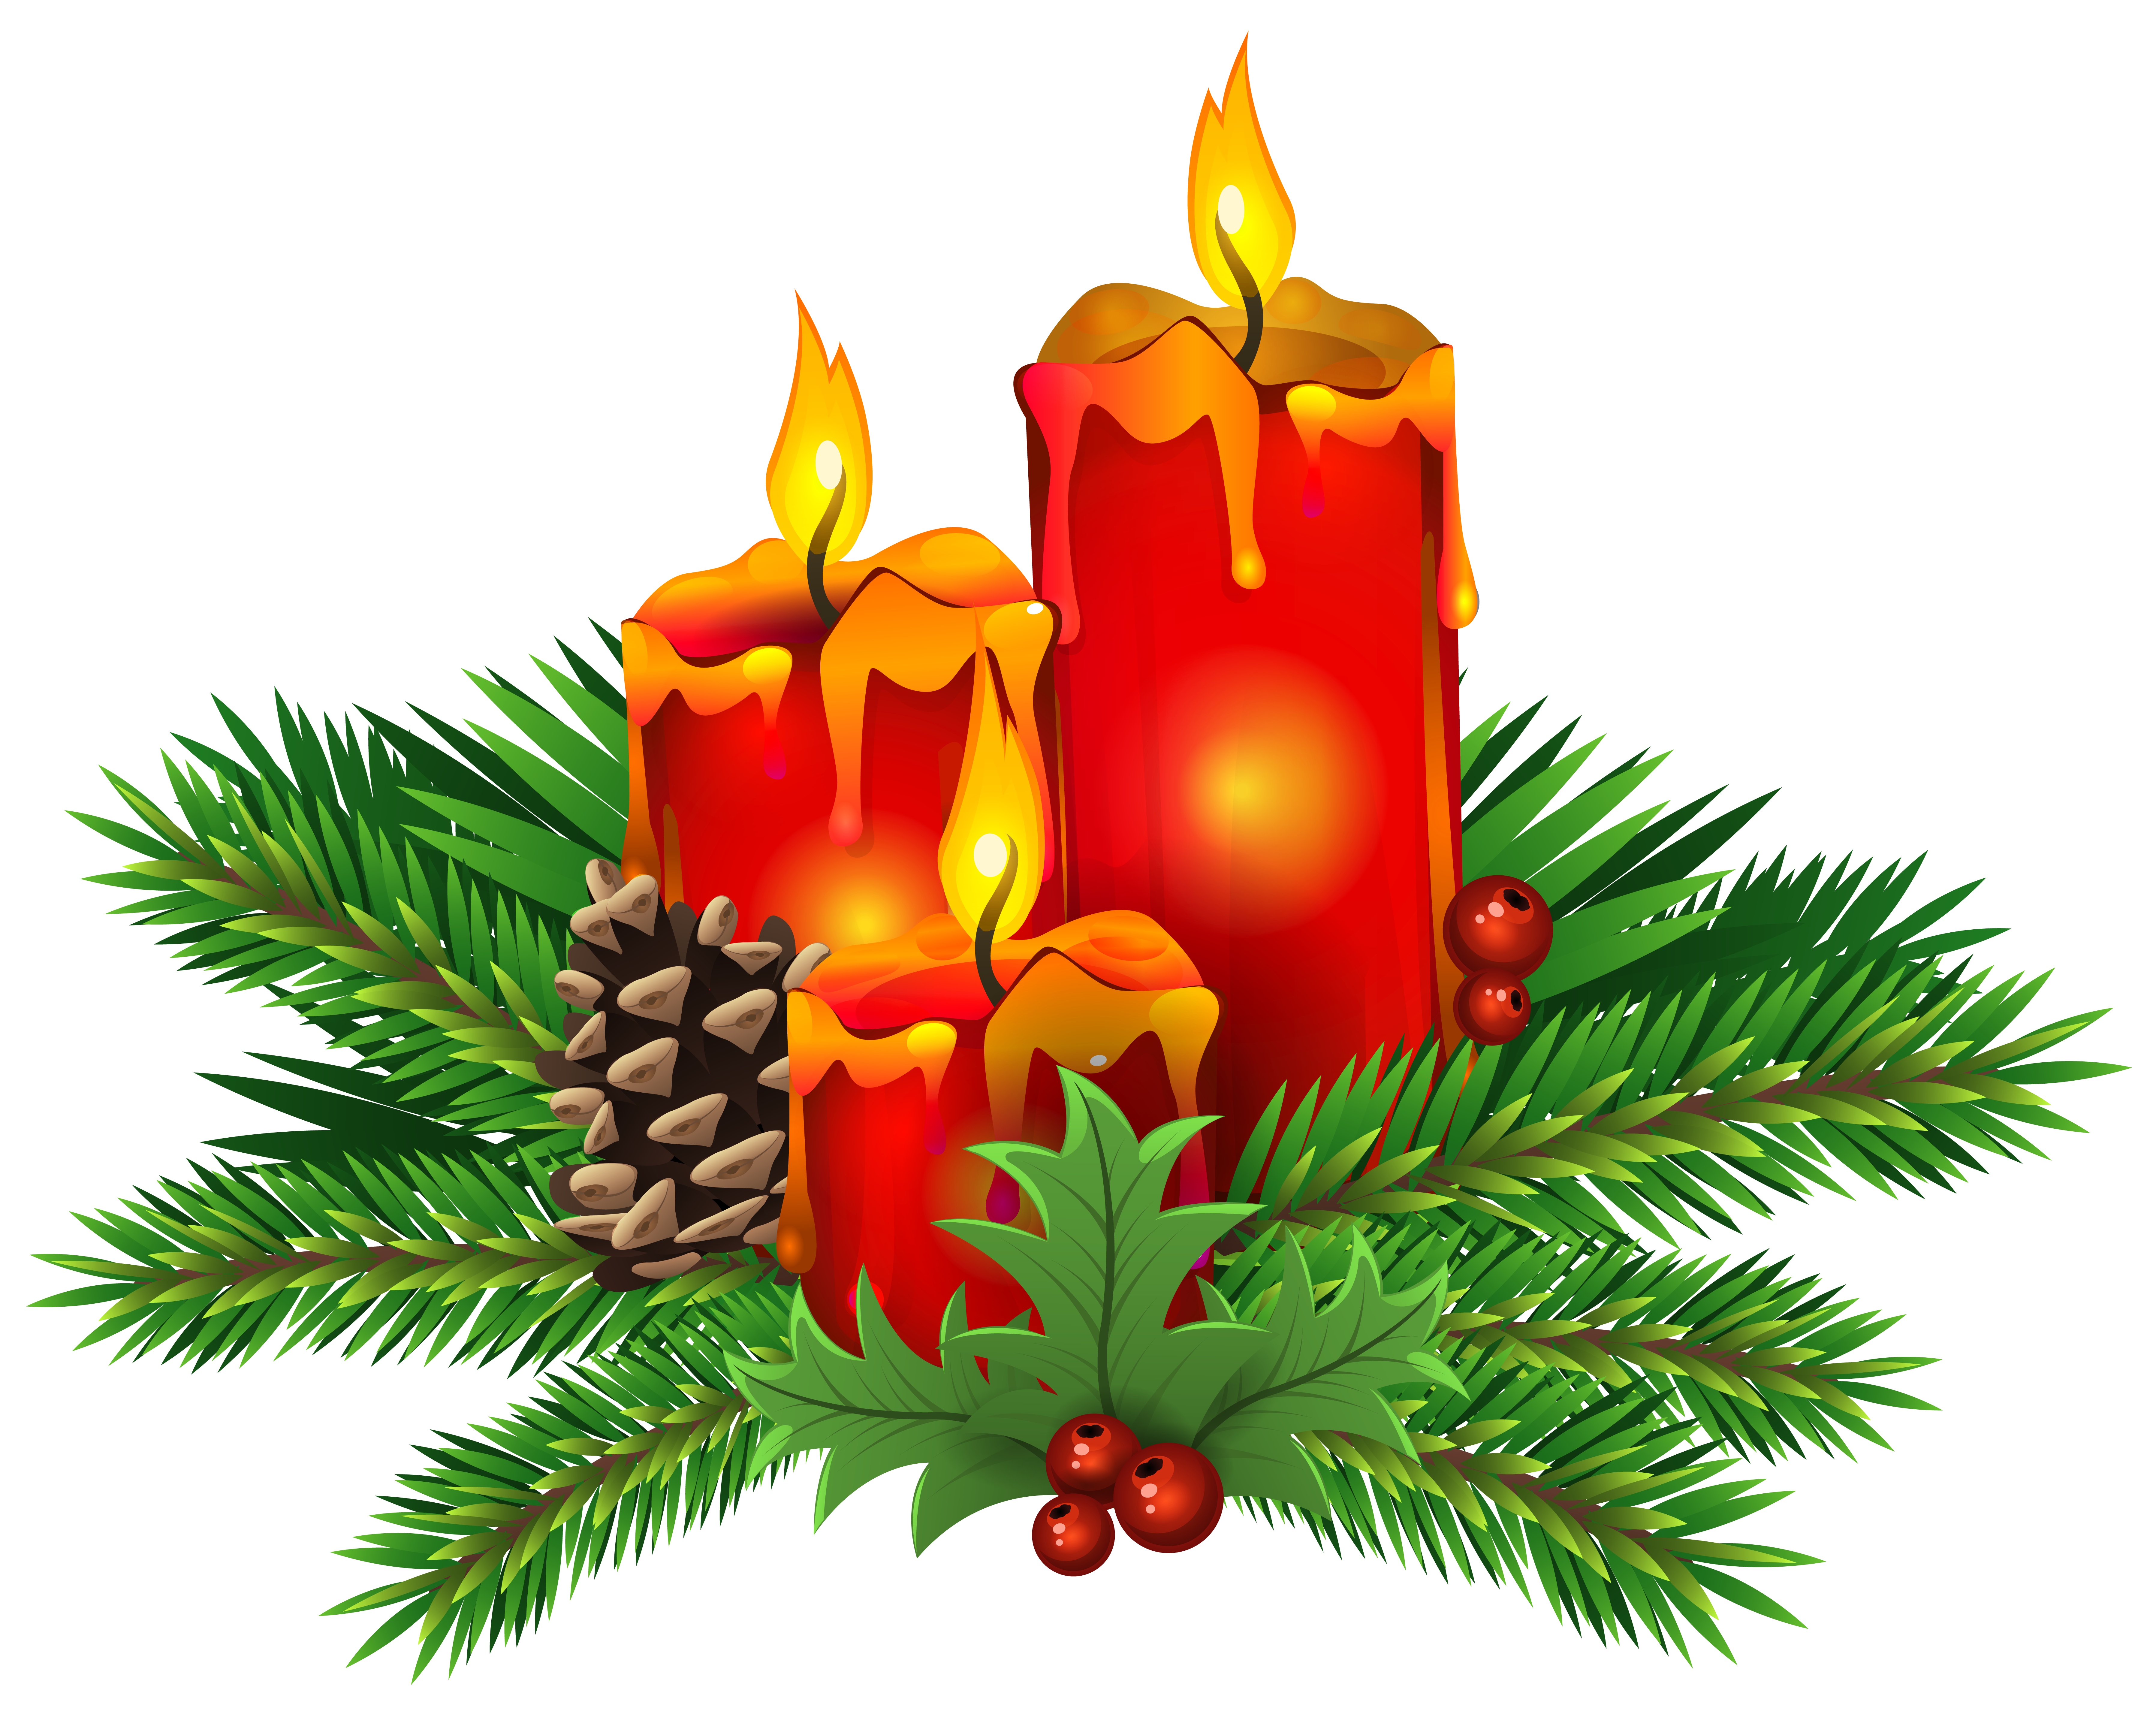 Tree lighting clipart vector royalty free download Christmas Candles PNG Clip Art Image | Gallery Yopriceville - High ... vector royalty free download